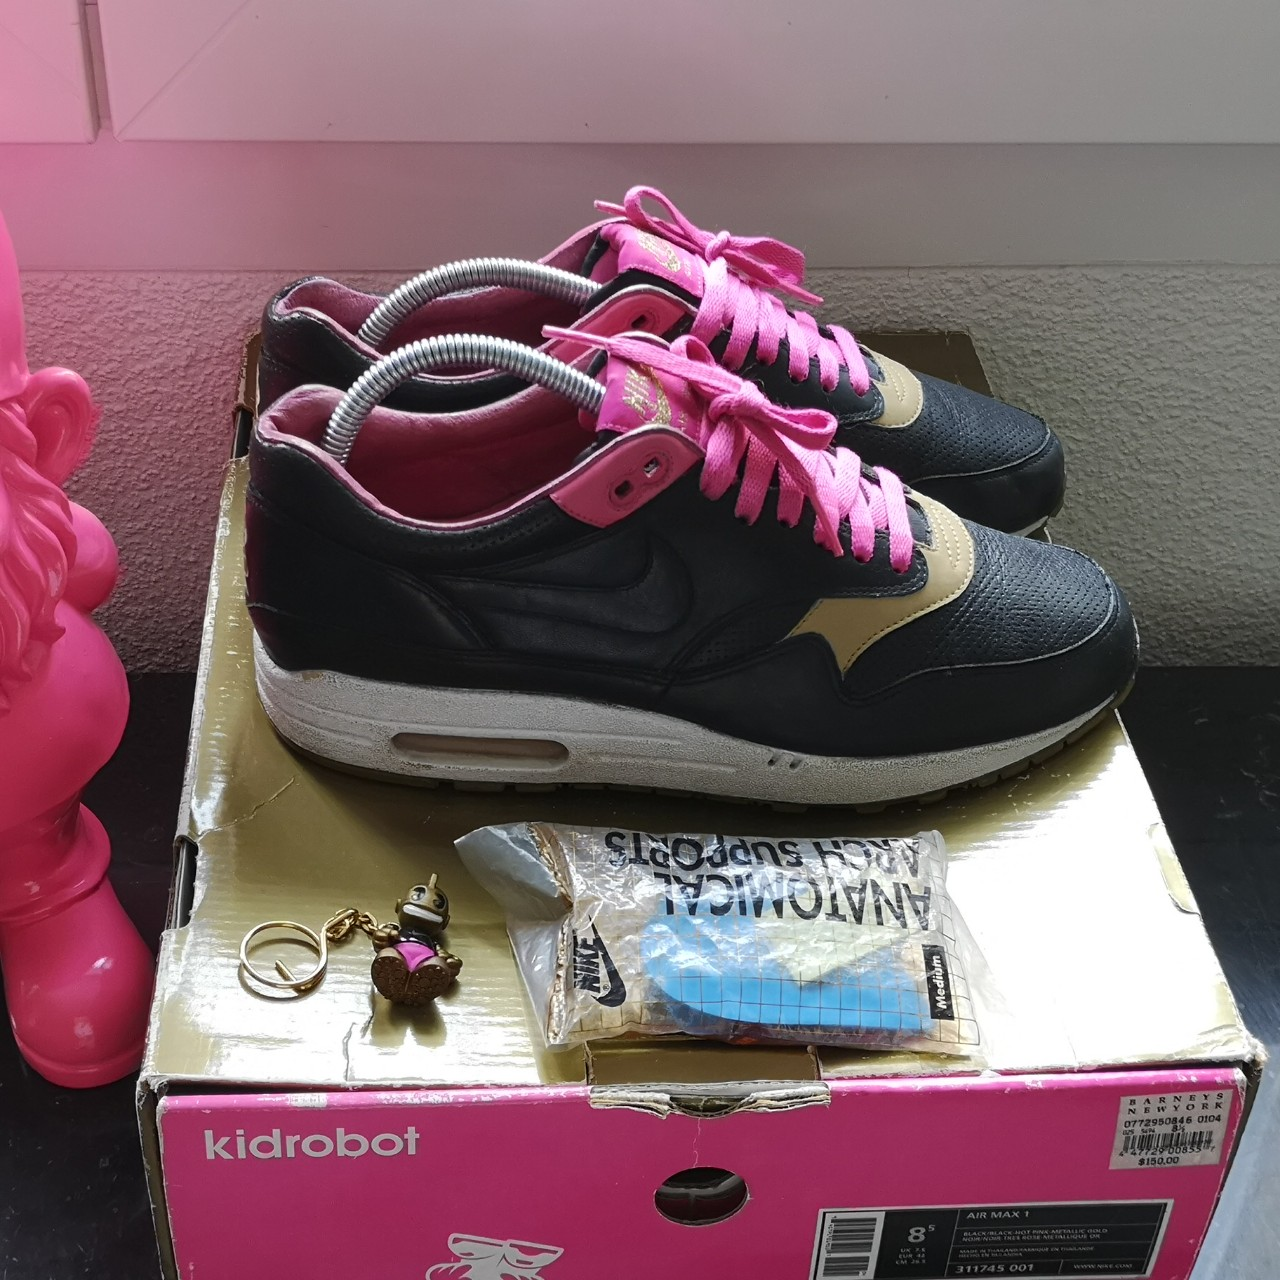 Nike Air Max 1 Kid Robot 8/10 With OG Box and Keychain - Depop